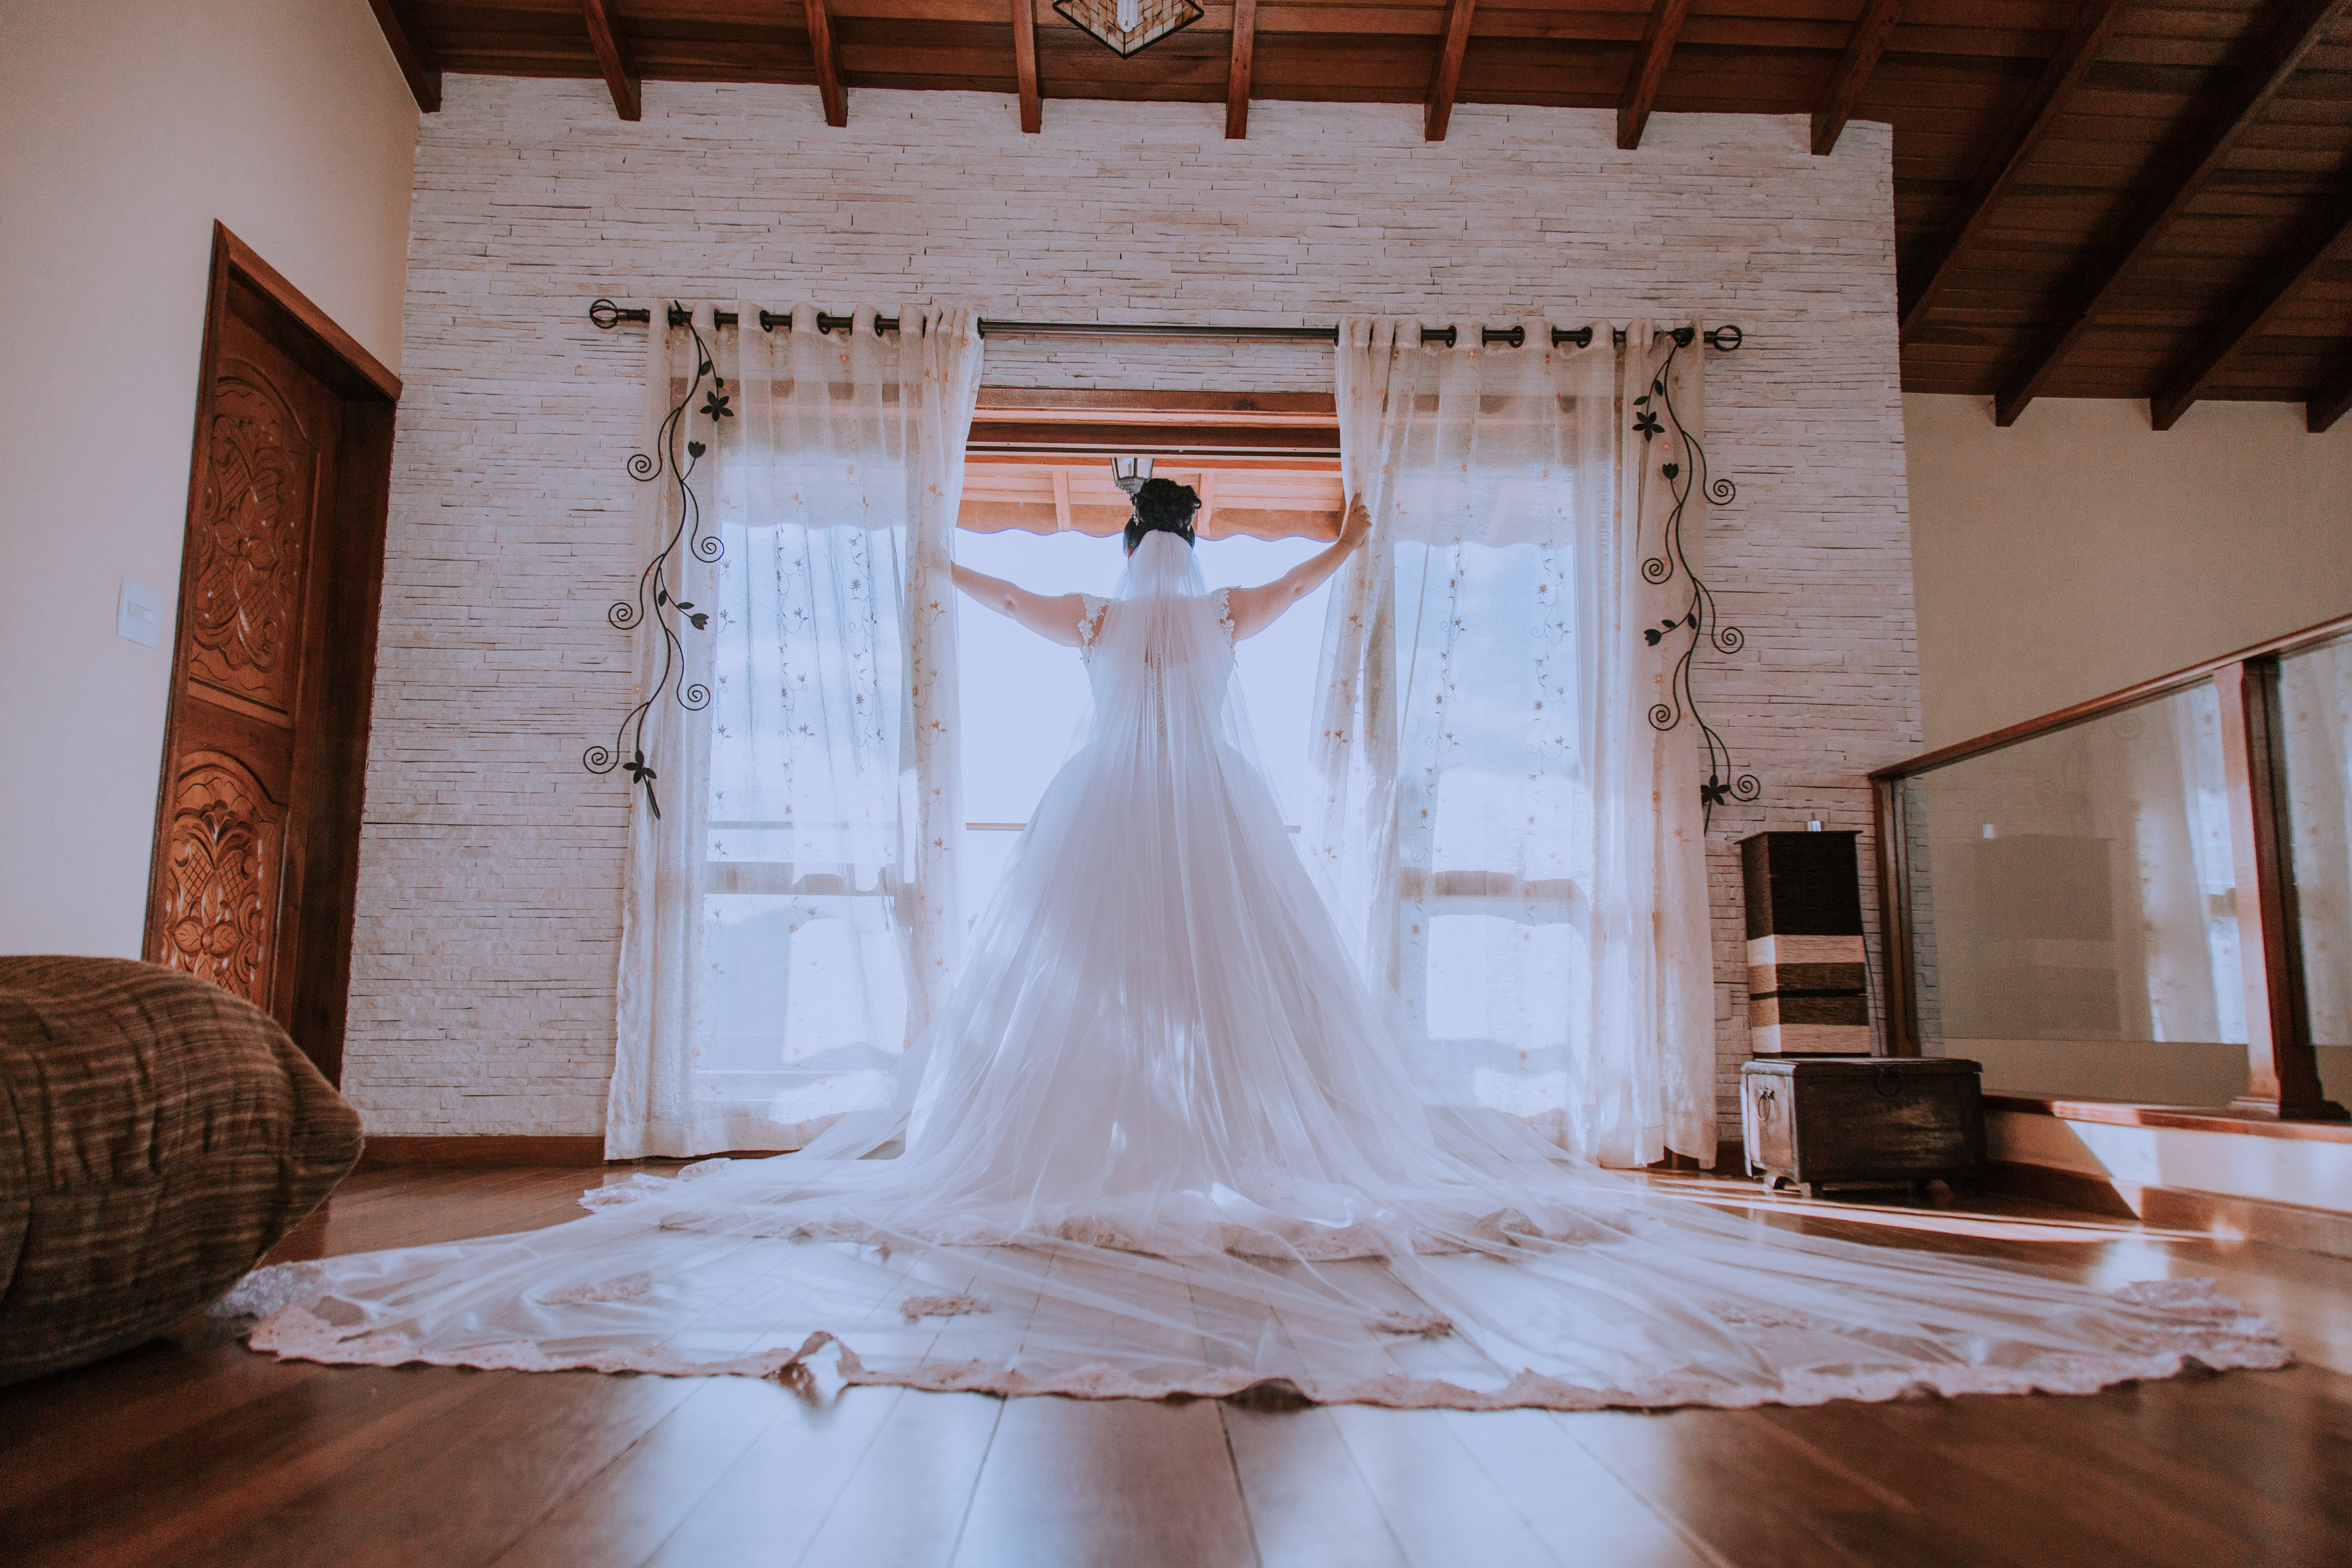 Woman in White Wedding Gown by the Window